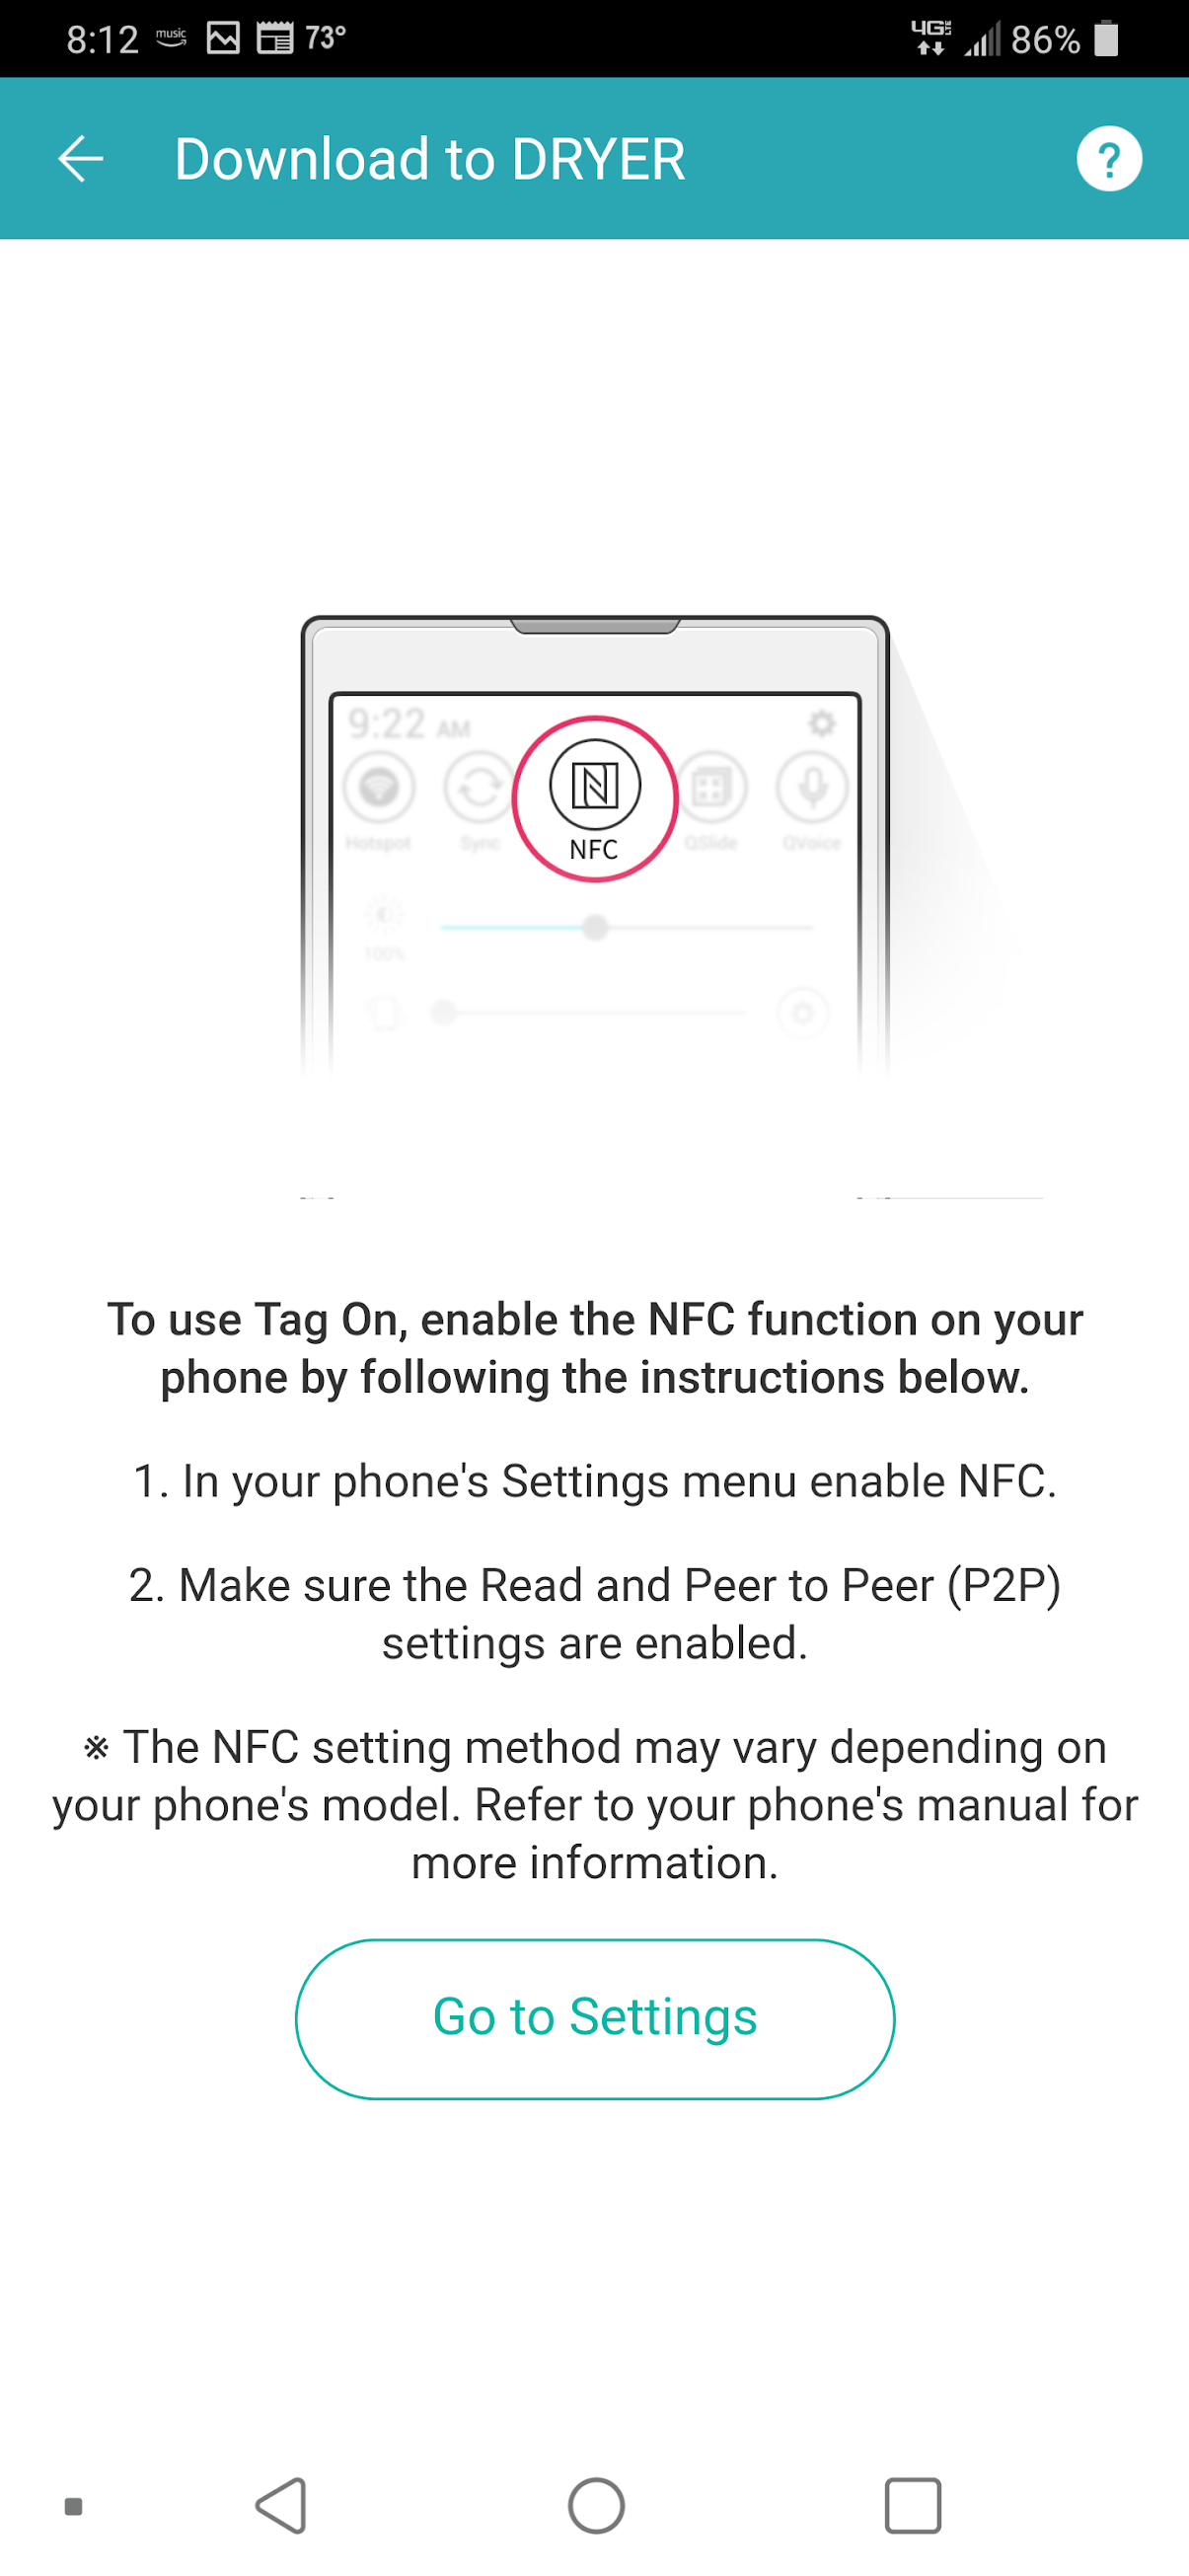 How to Download Cycles to your Dryer using NFC - SmartThinQ